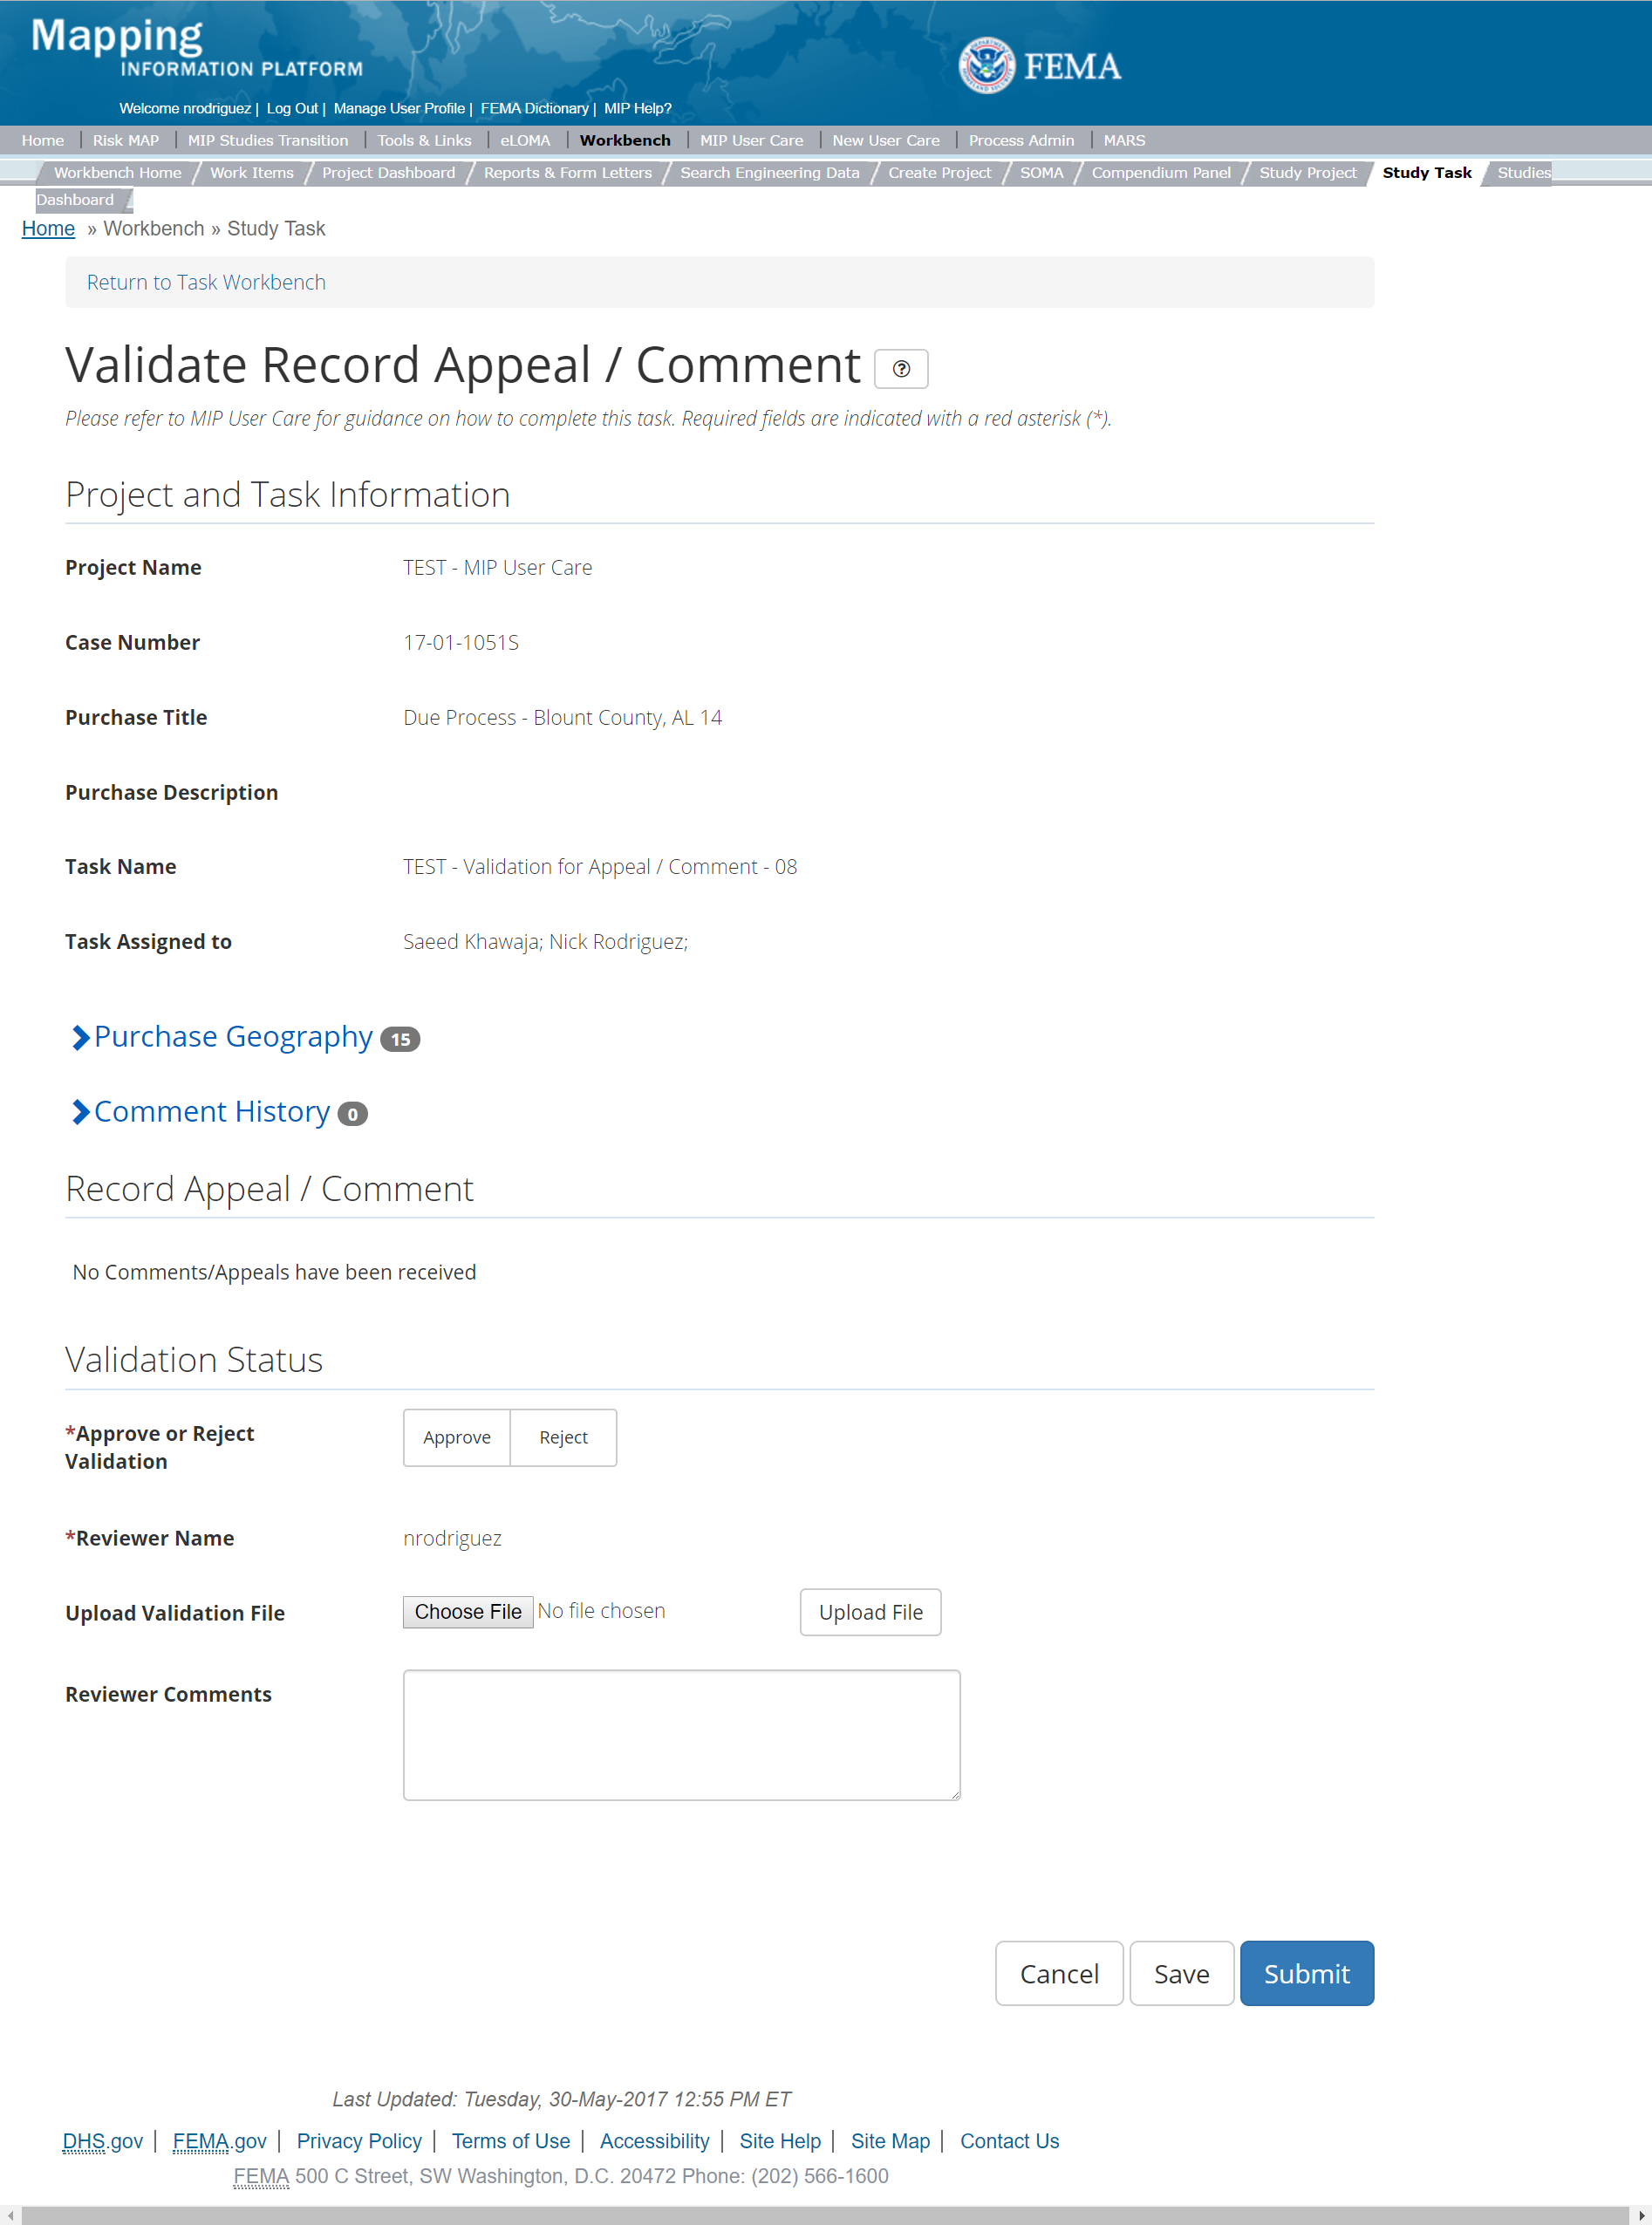 Validate Record Appeal/Comment Task